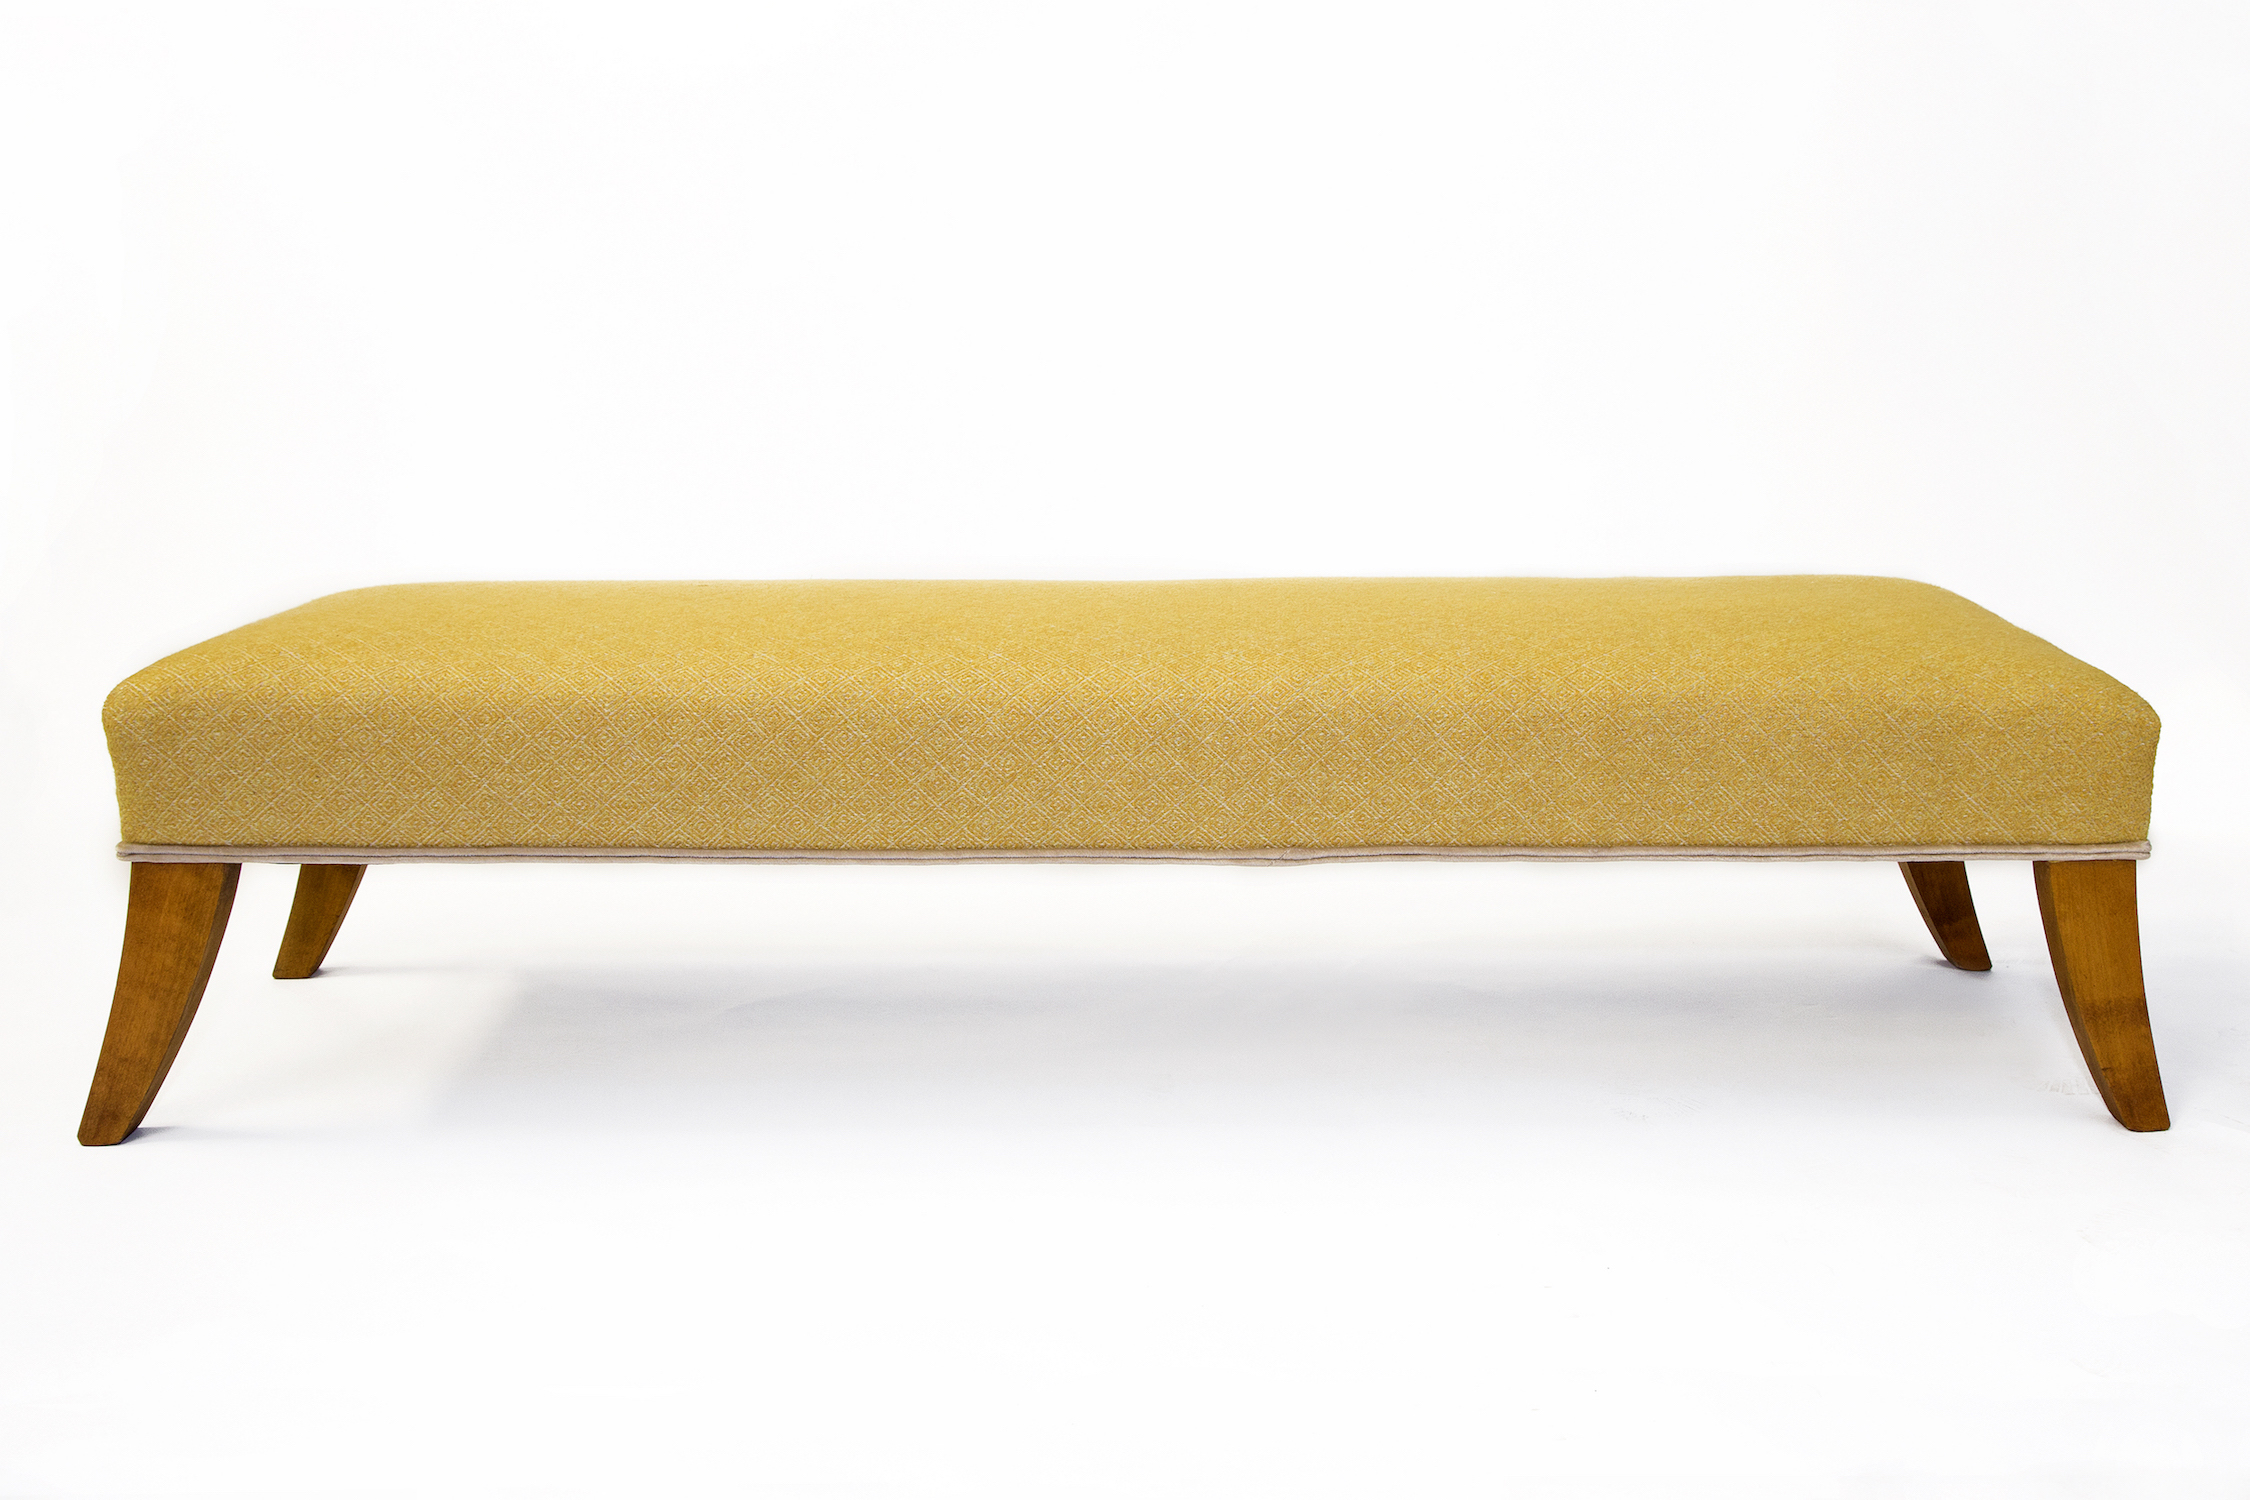 Rectangular Wrap-over Footstool with Double Piping Trim and Sabre Legs